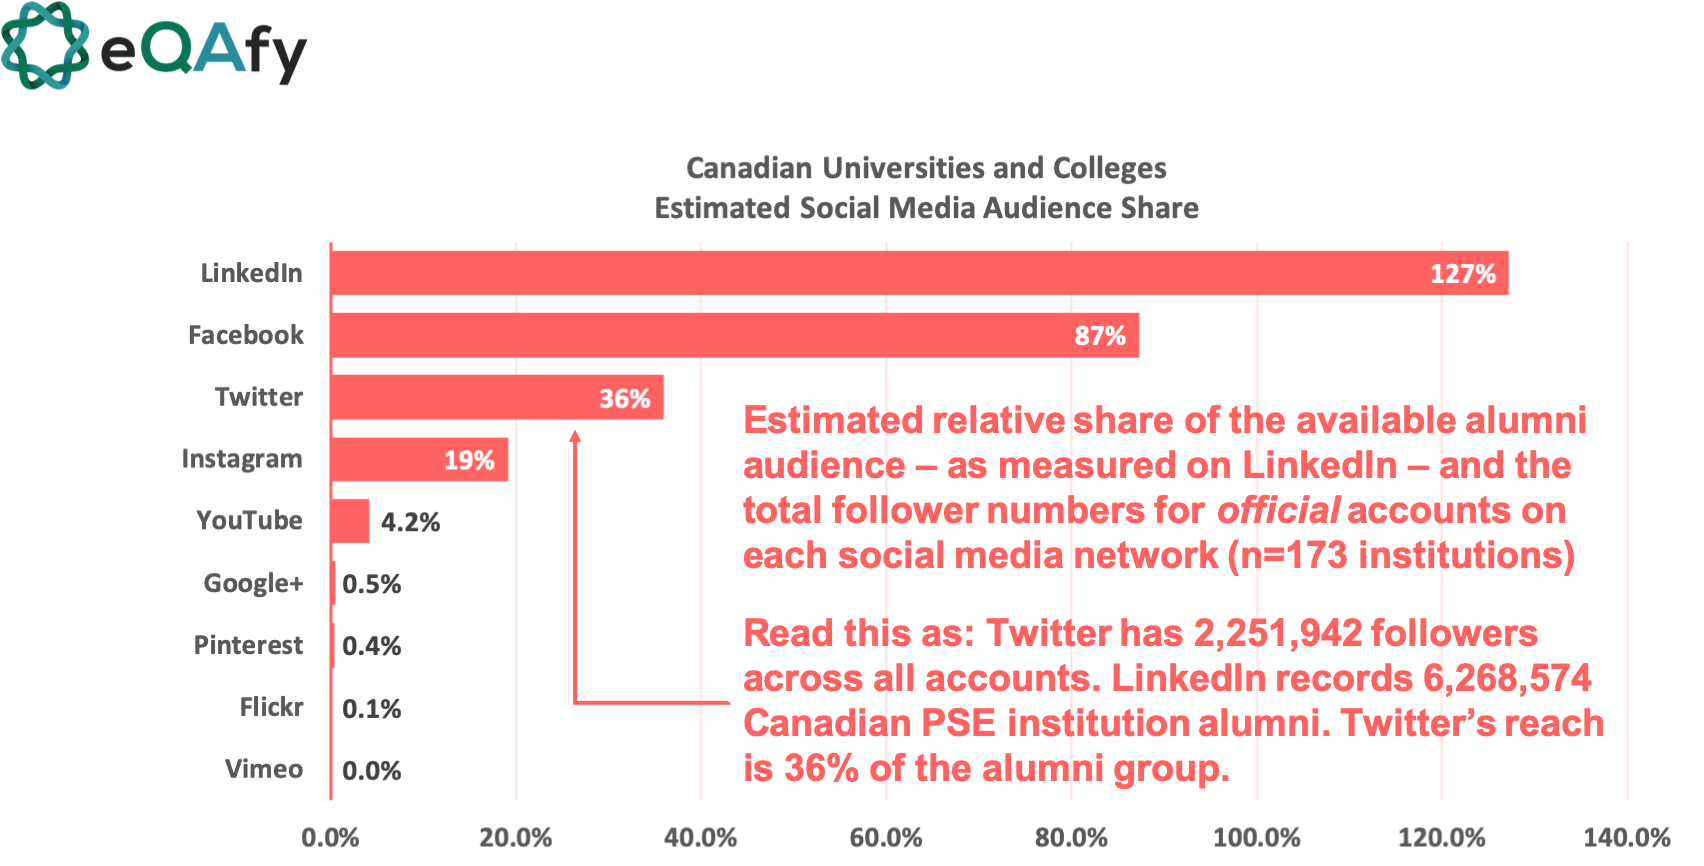 social media networks estimated audience share for higher education/post-secondary institutions in Canada